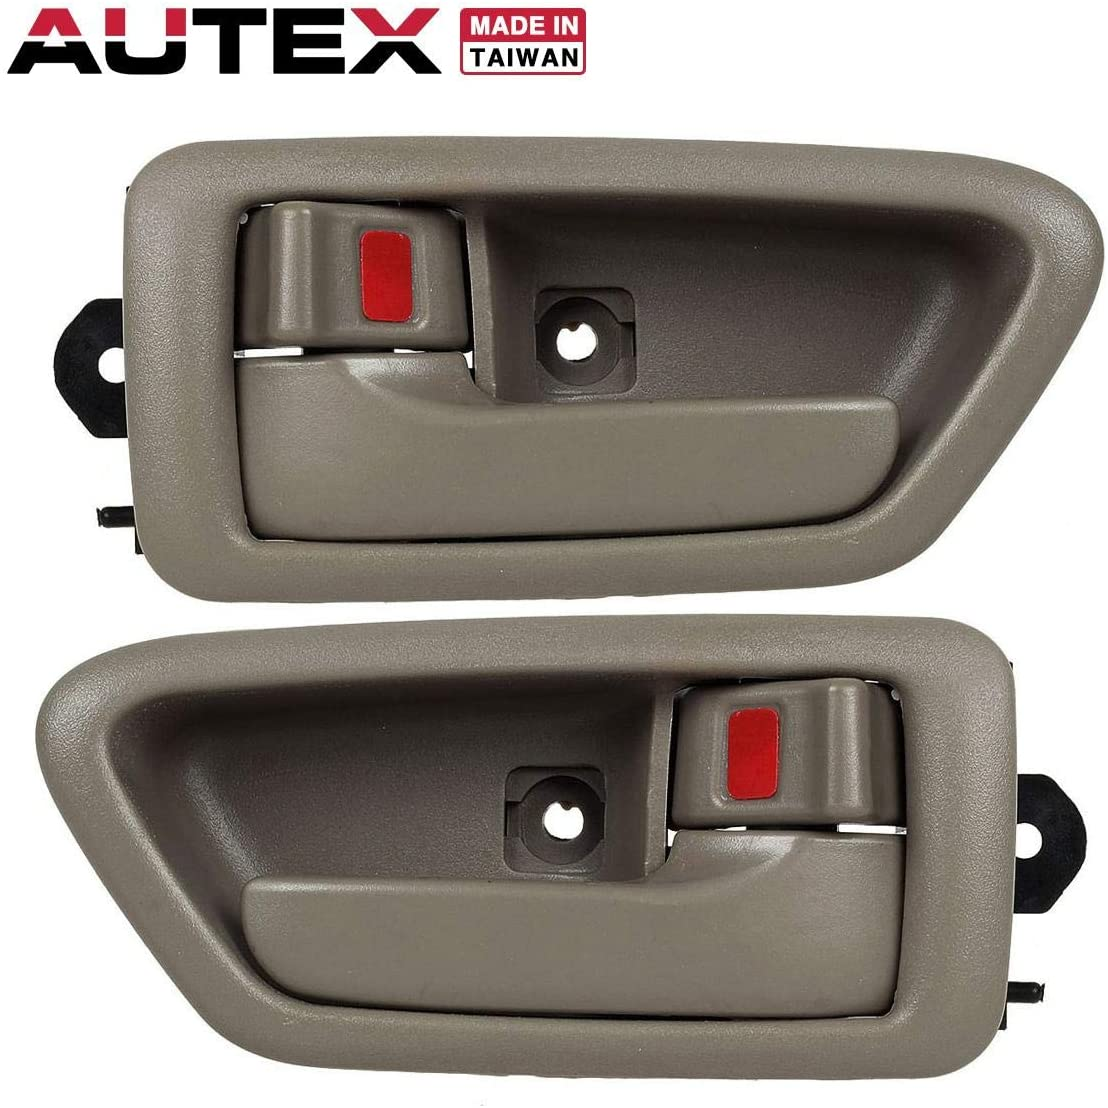 AUTEX Door Handle 2pcs Beige Interior Front/Rear Left Right Side Compatible with Camry 1997 1998 1999 2000 2001 Door Handle Driver Passenger Side 91005 91004 91009 91008